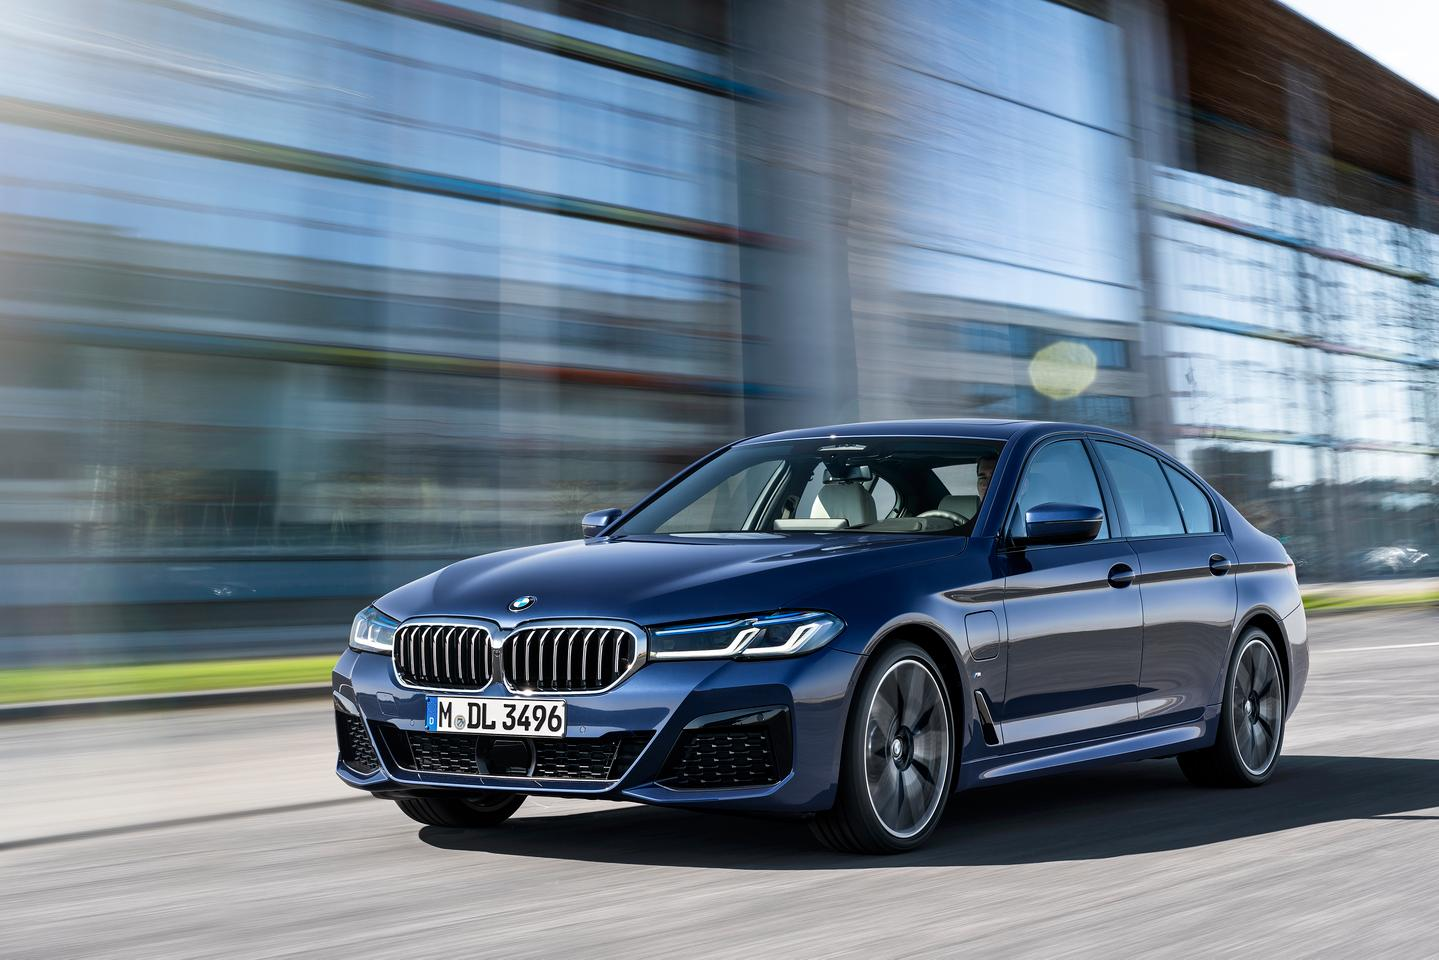 Built-in options will soon become subscription services under BMW's new sales model